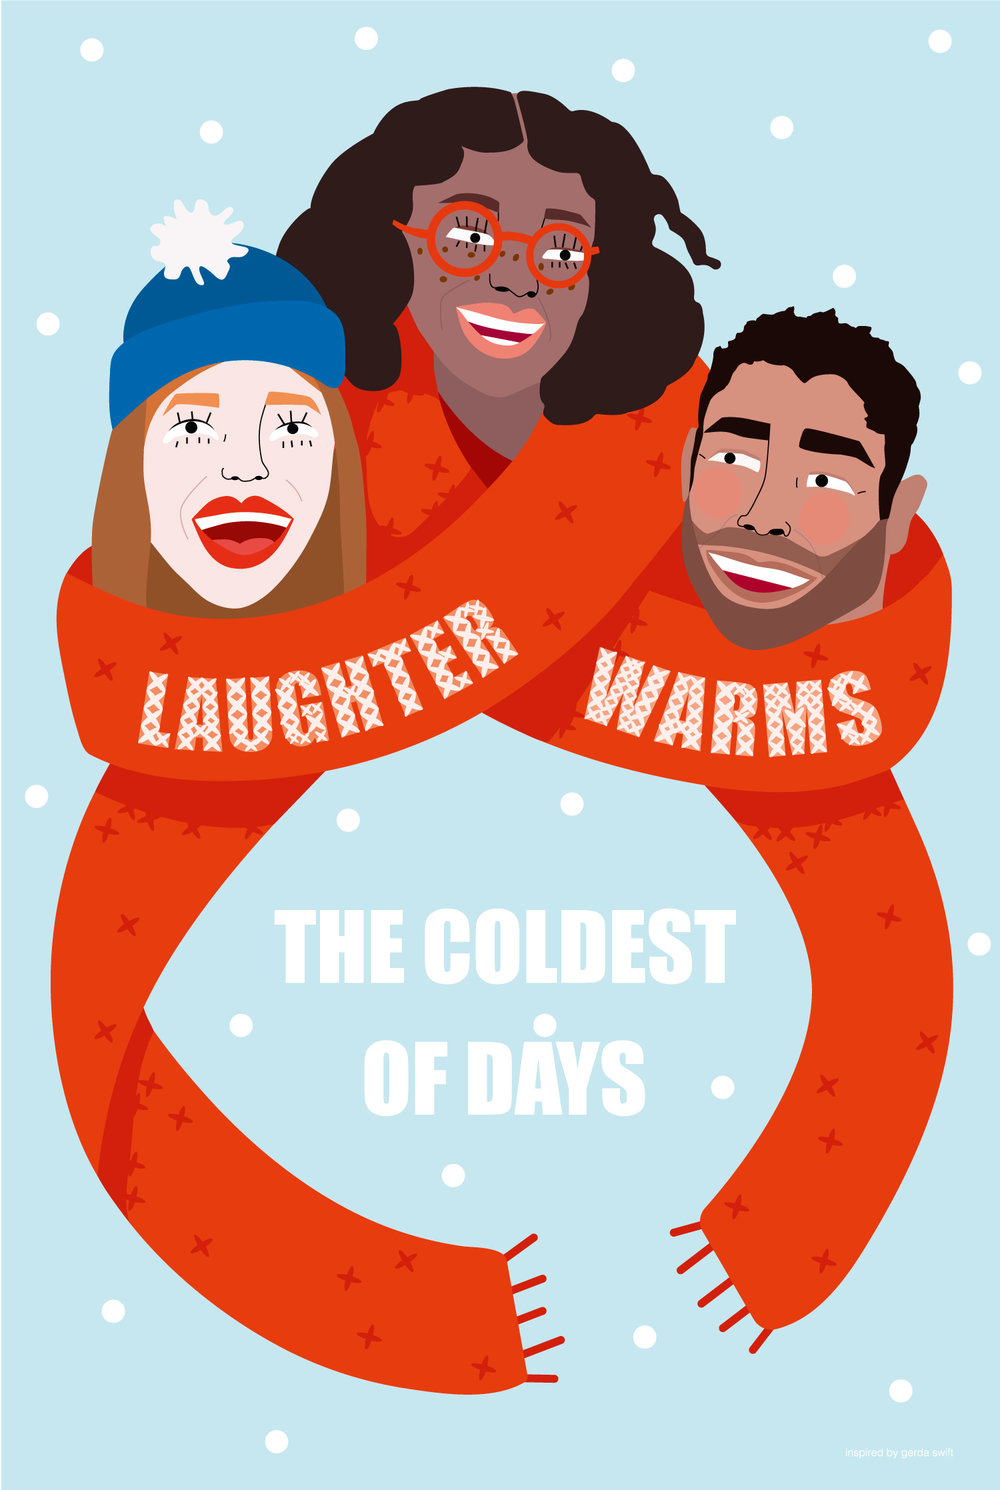 'Laughter Warms The Coldest Days' poster by Sydney Toews